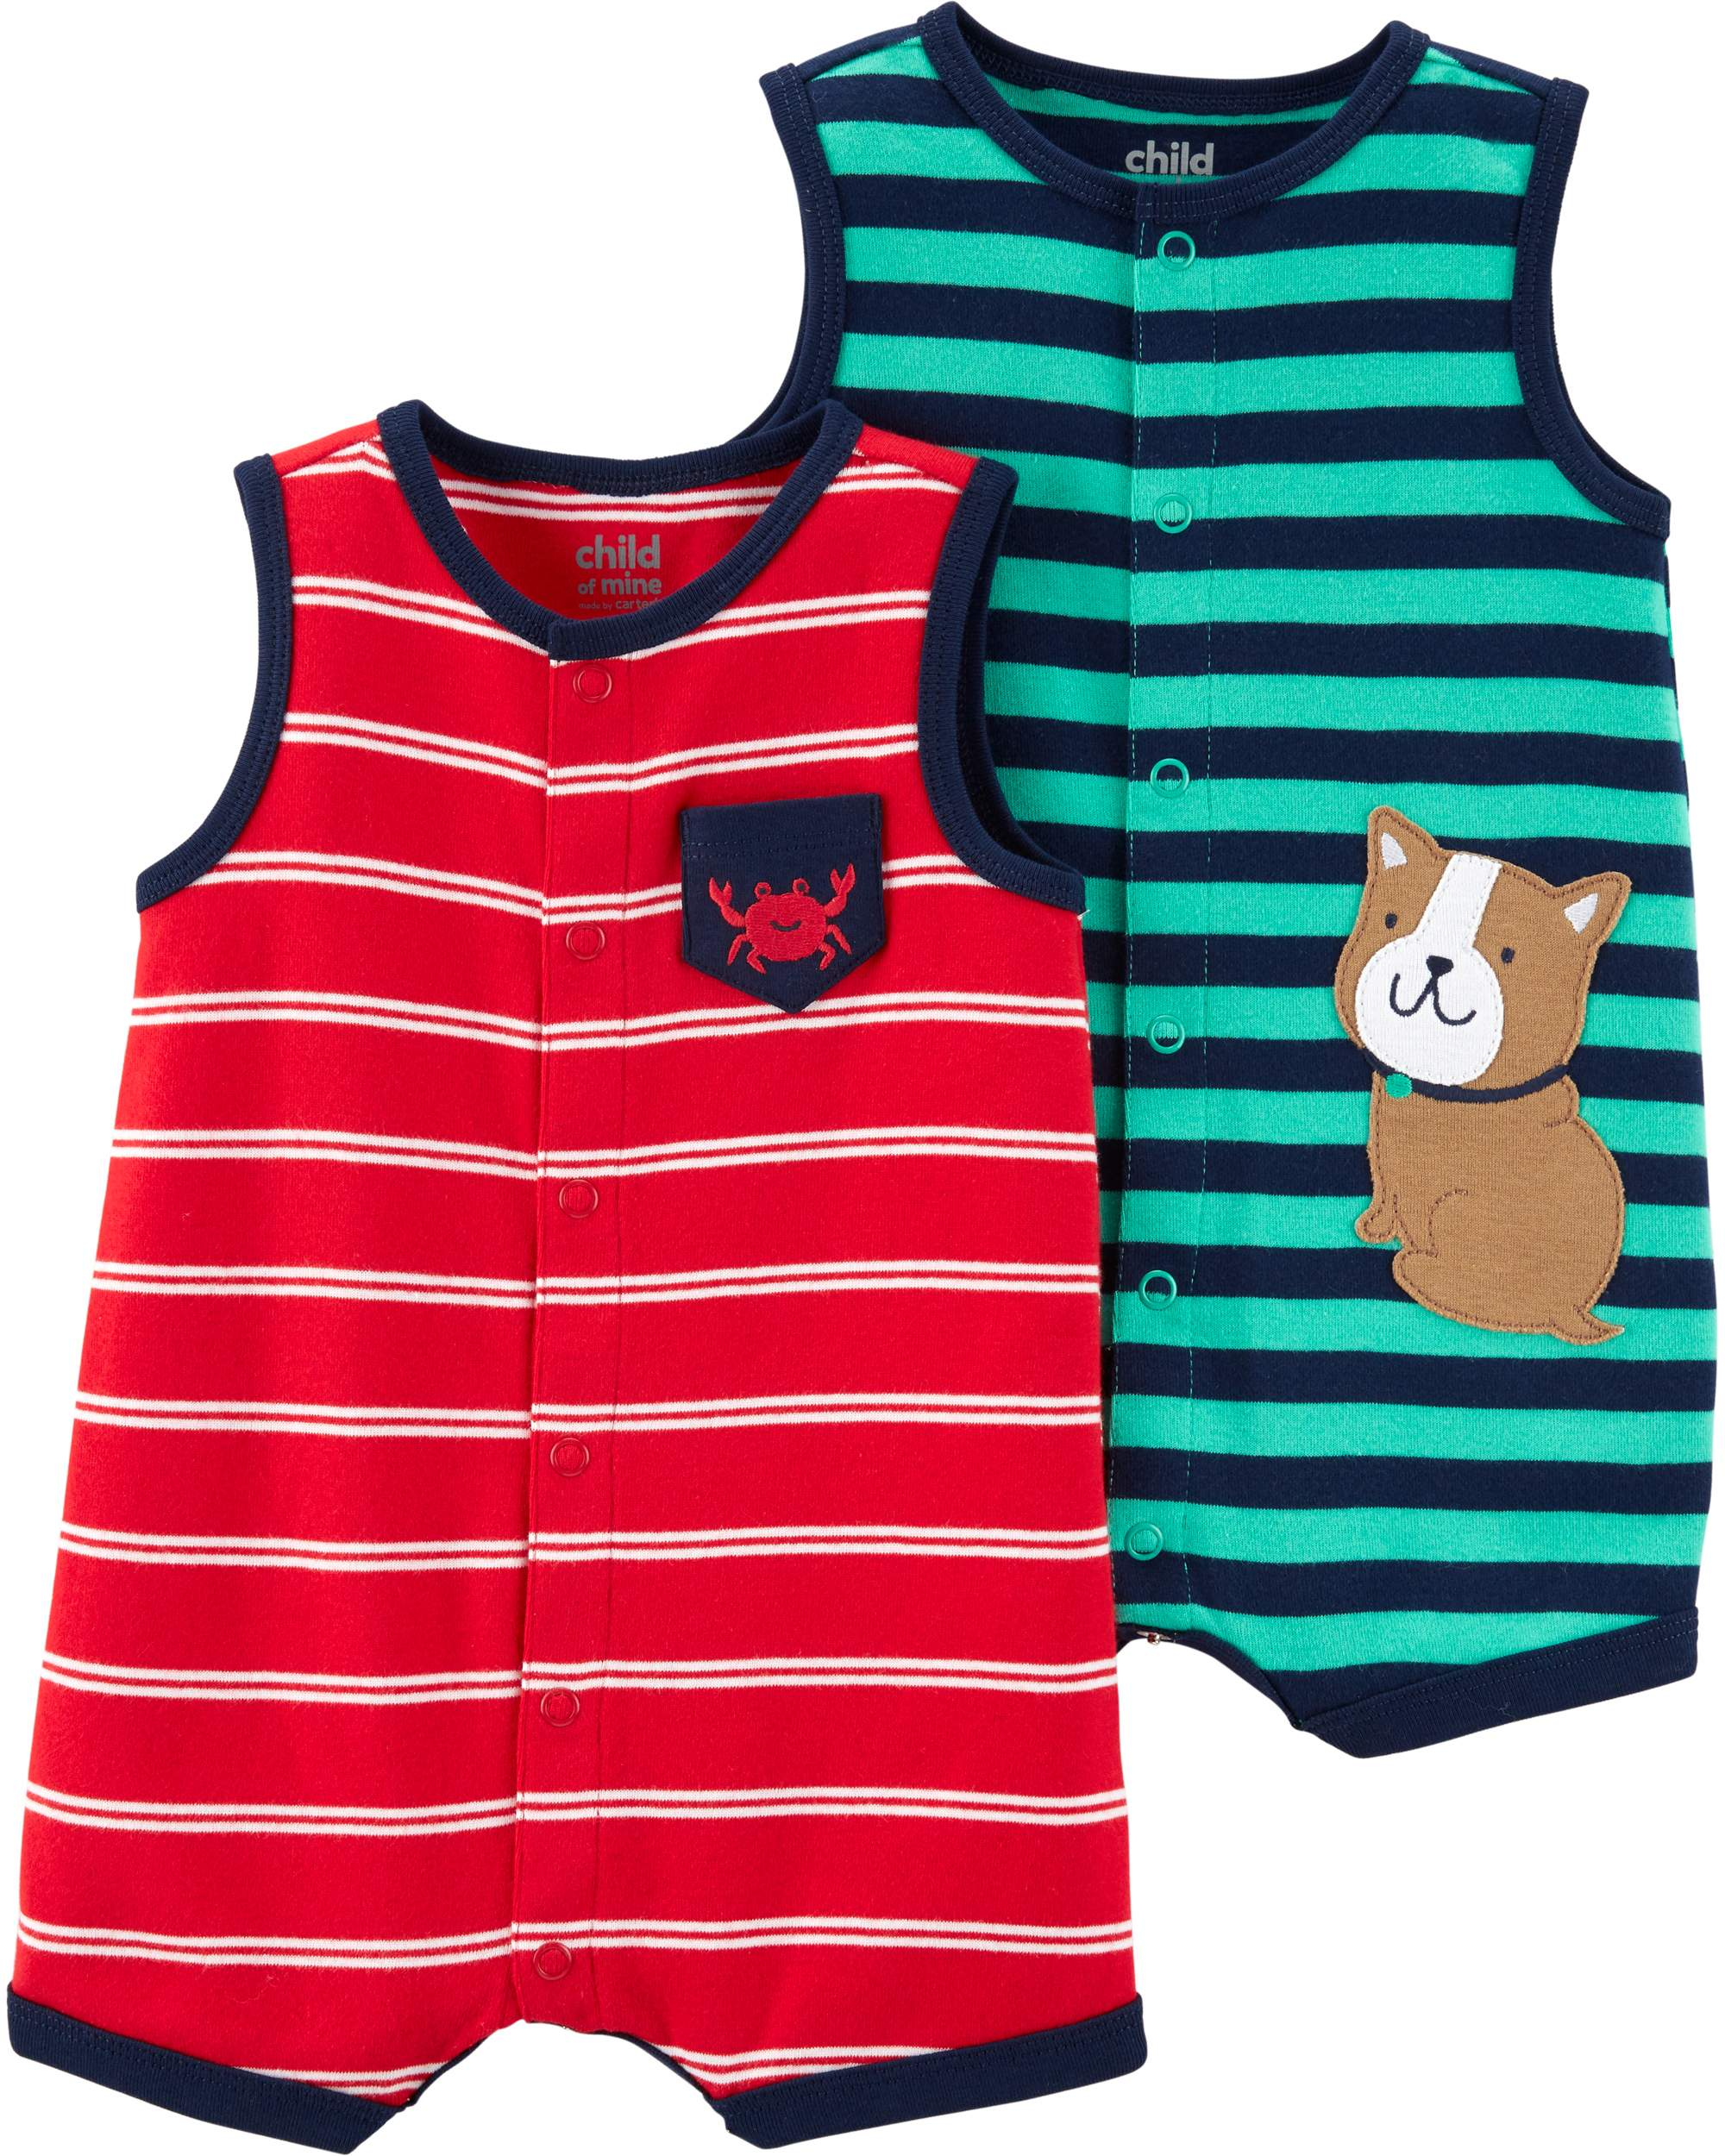 419cb07f9 Child of Mine by Carter's - Snap up romper, 2 pack (Baby Boys) - Walmart.com